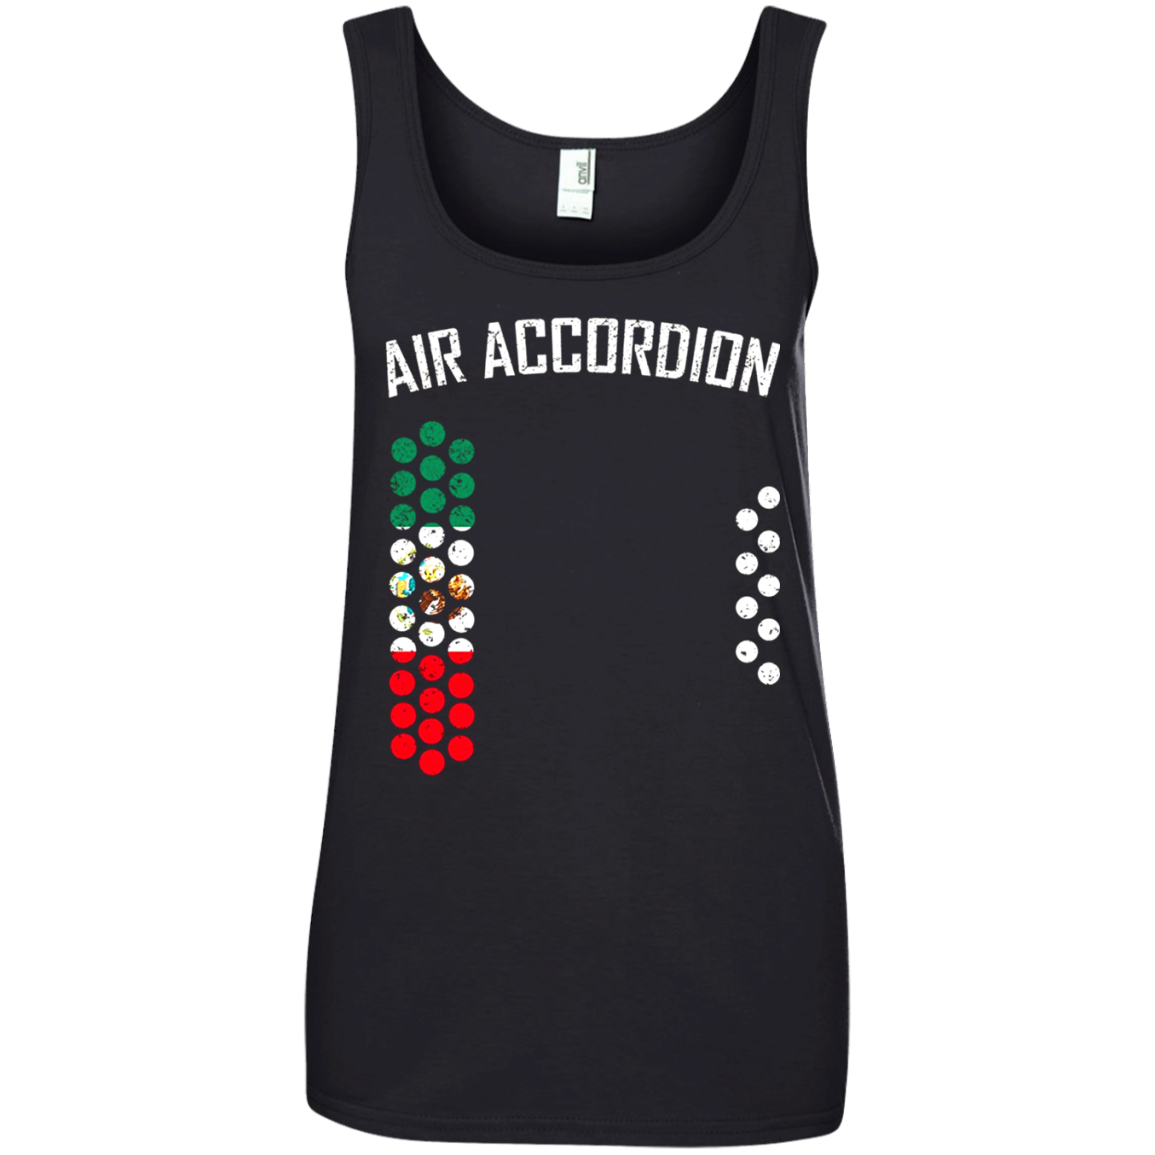 Air accordion t shirt - The Flag of Mexico T shirt hoodie sweater Tank Top 882